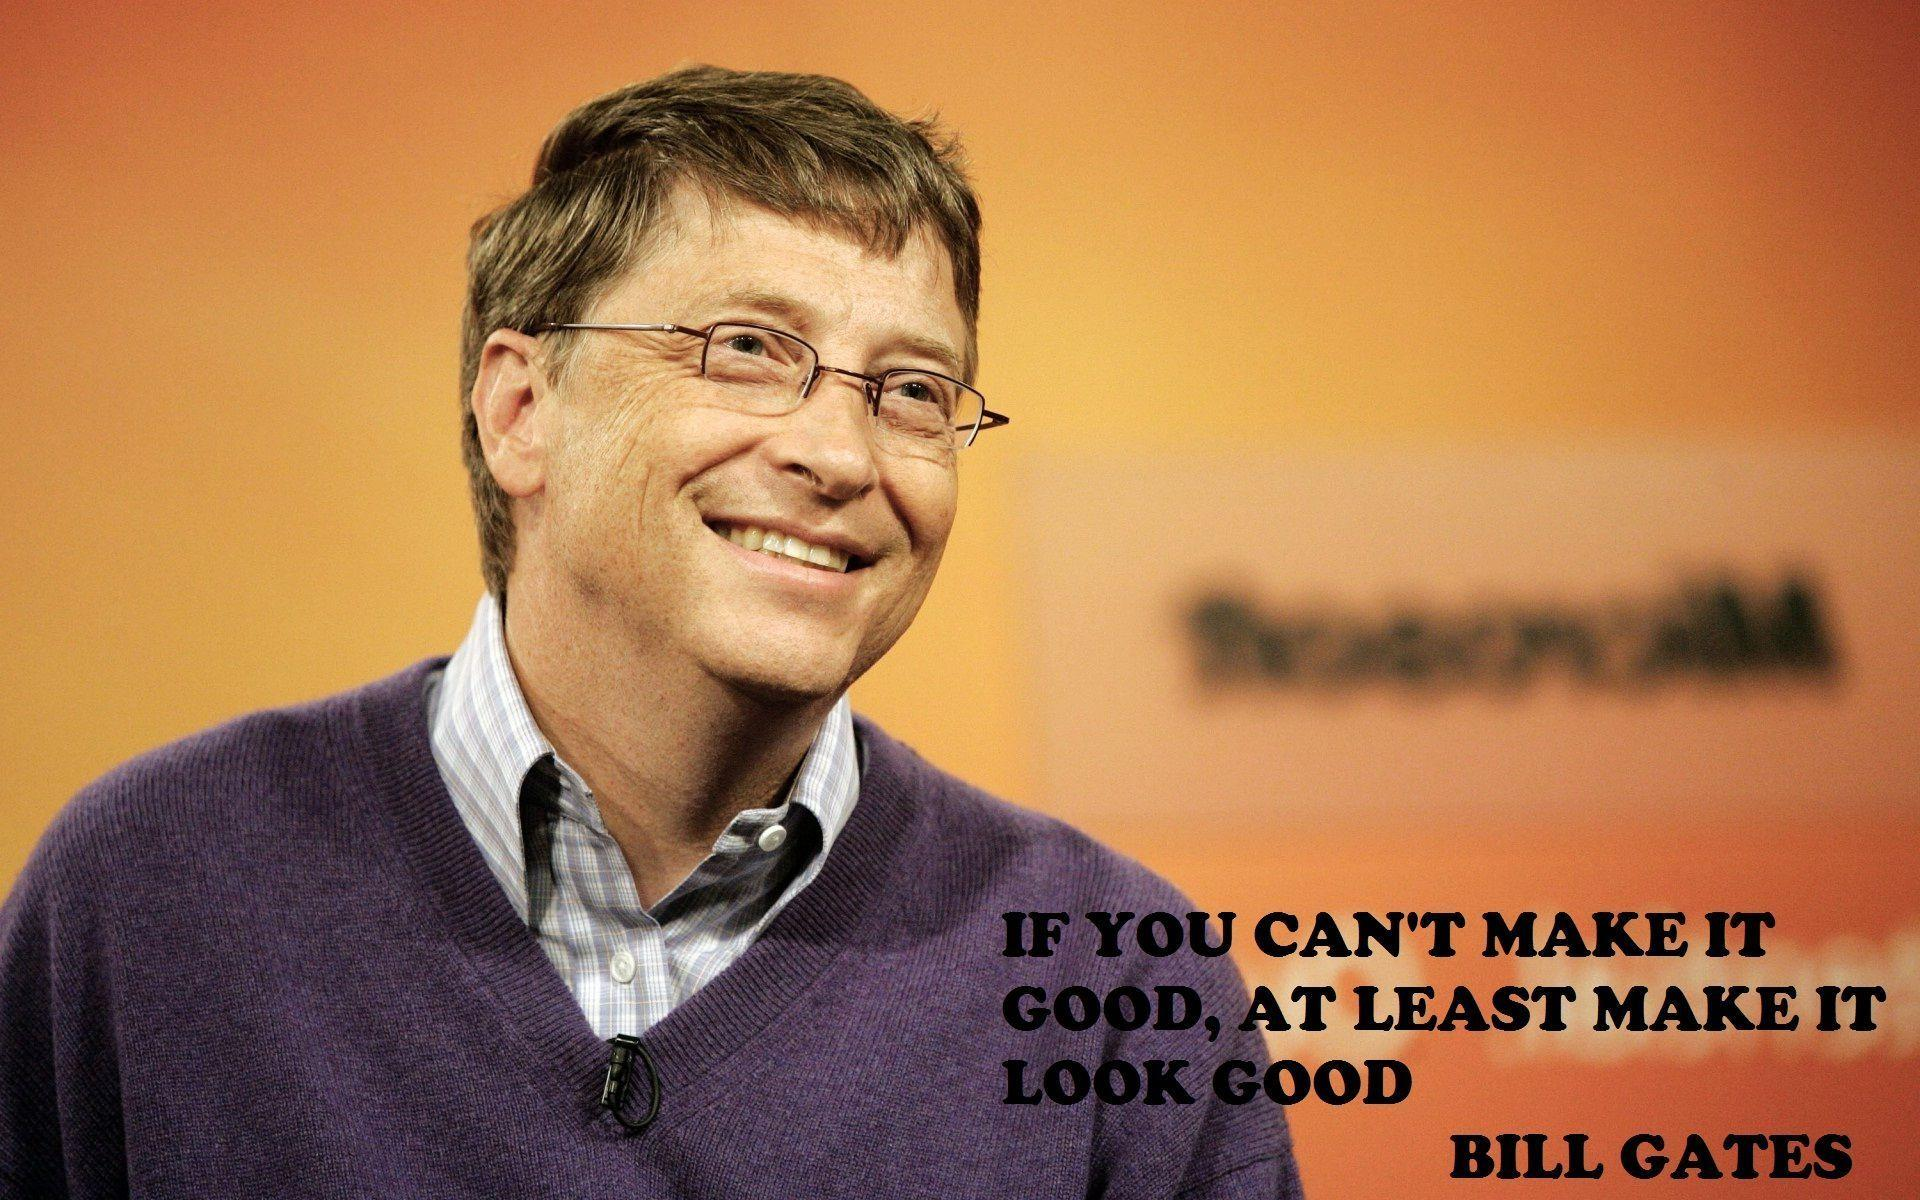 bill gates Bill gates: bill gates, american computer programmer and entrepreneur who cofounded microsoft corporation, the world's largest personal-computer software company.